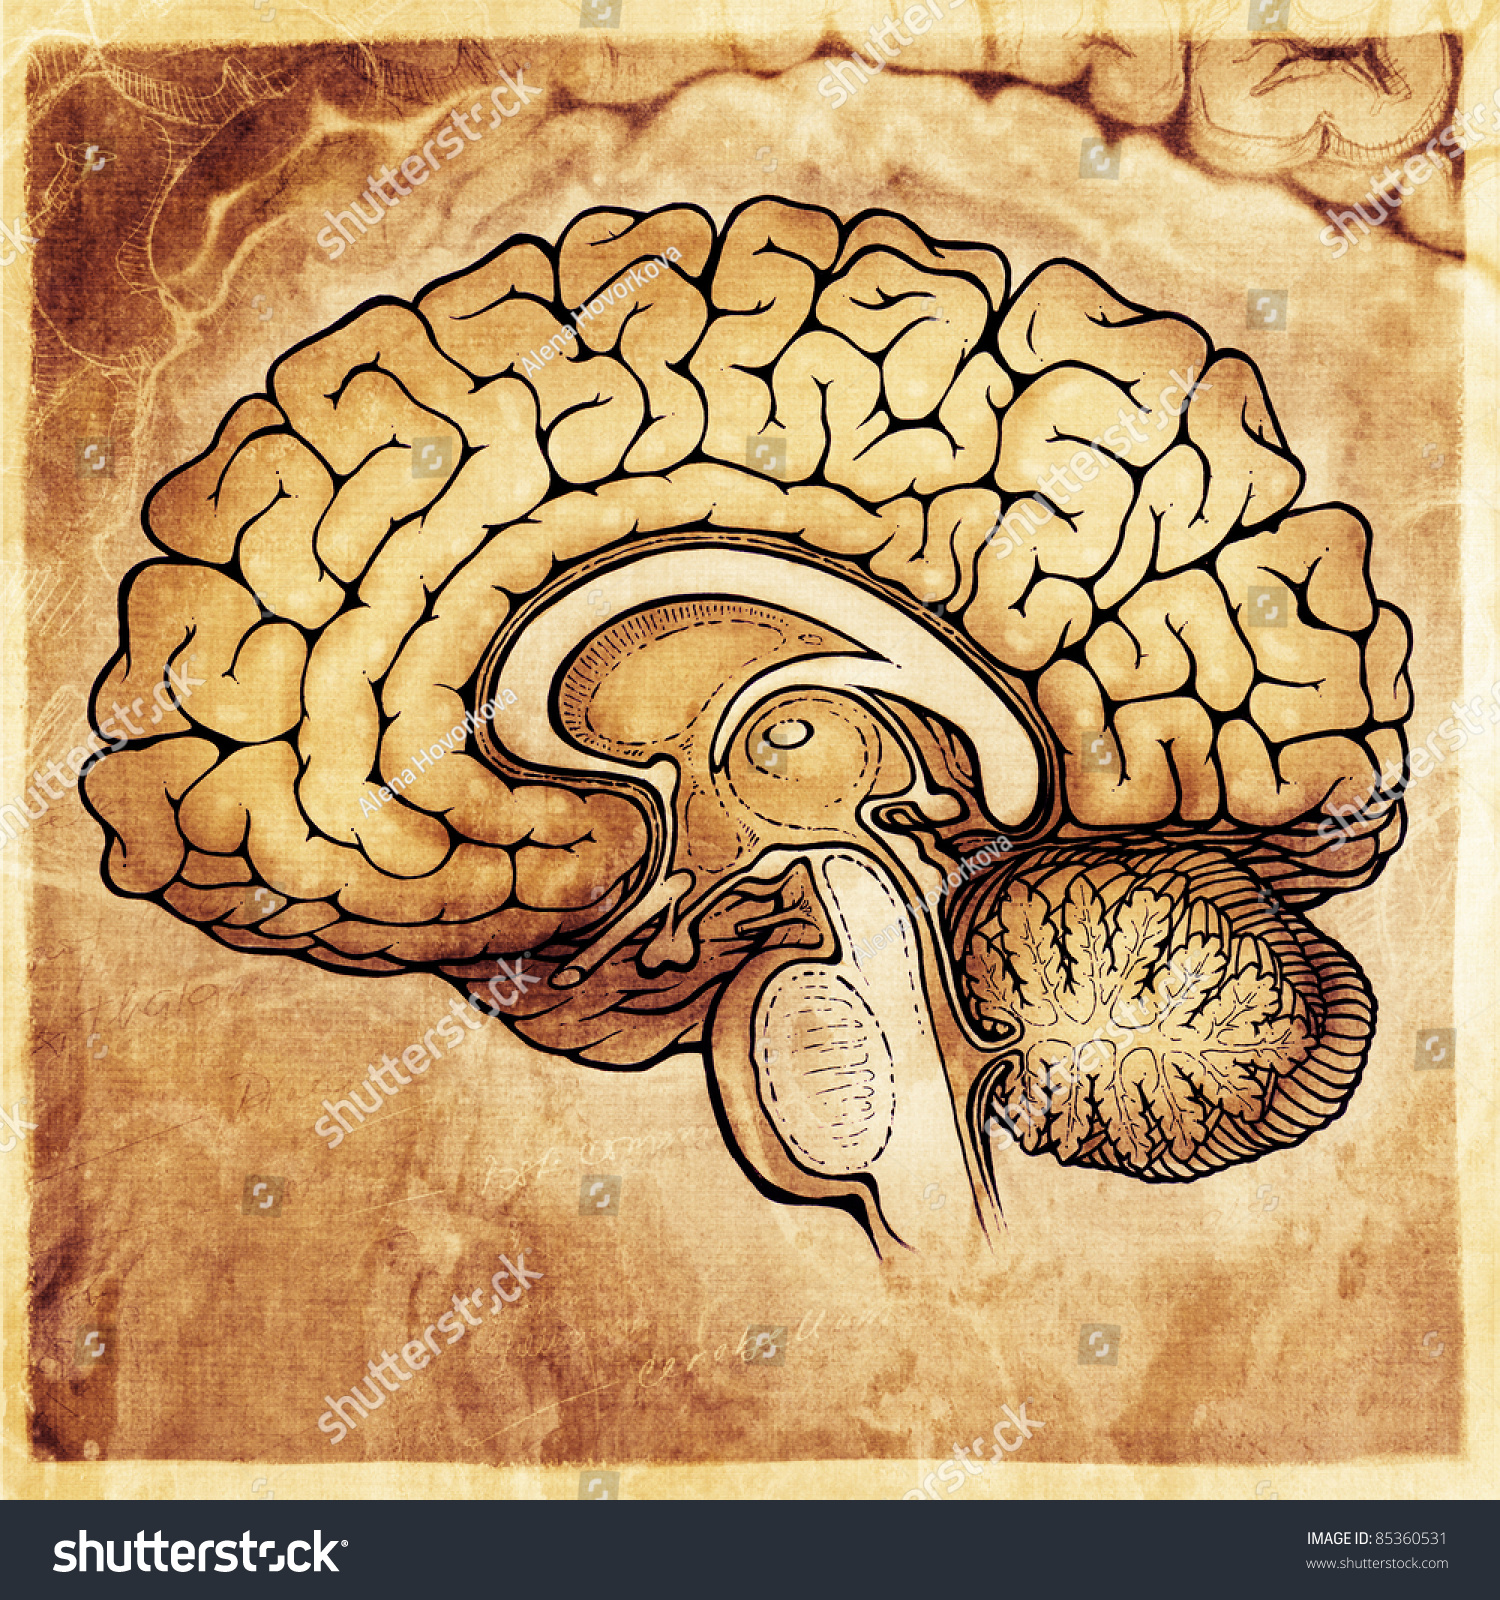 Stock Photo Human Brain